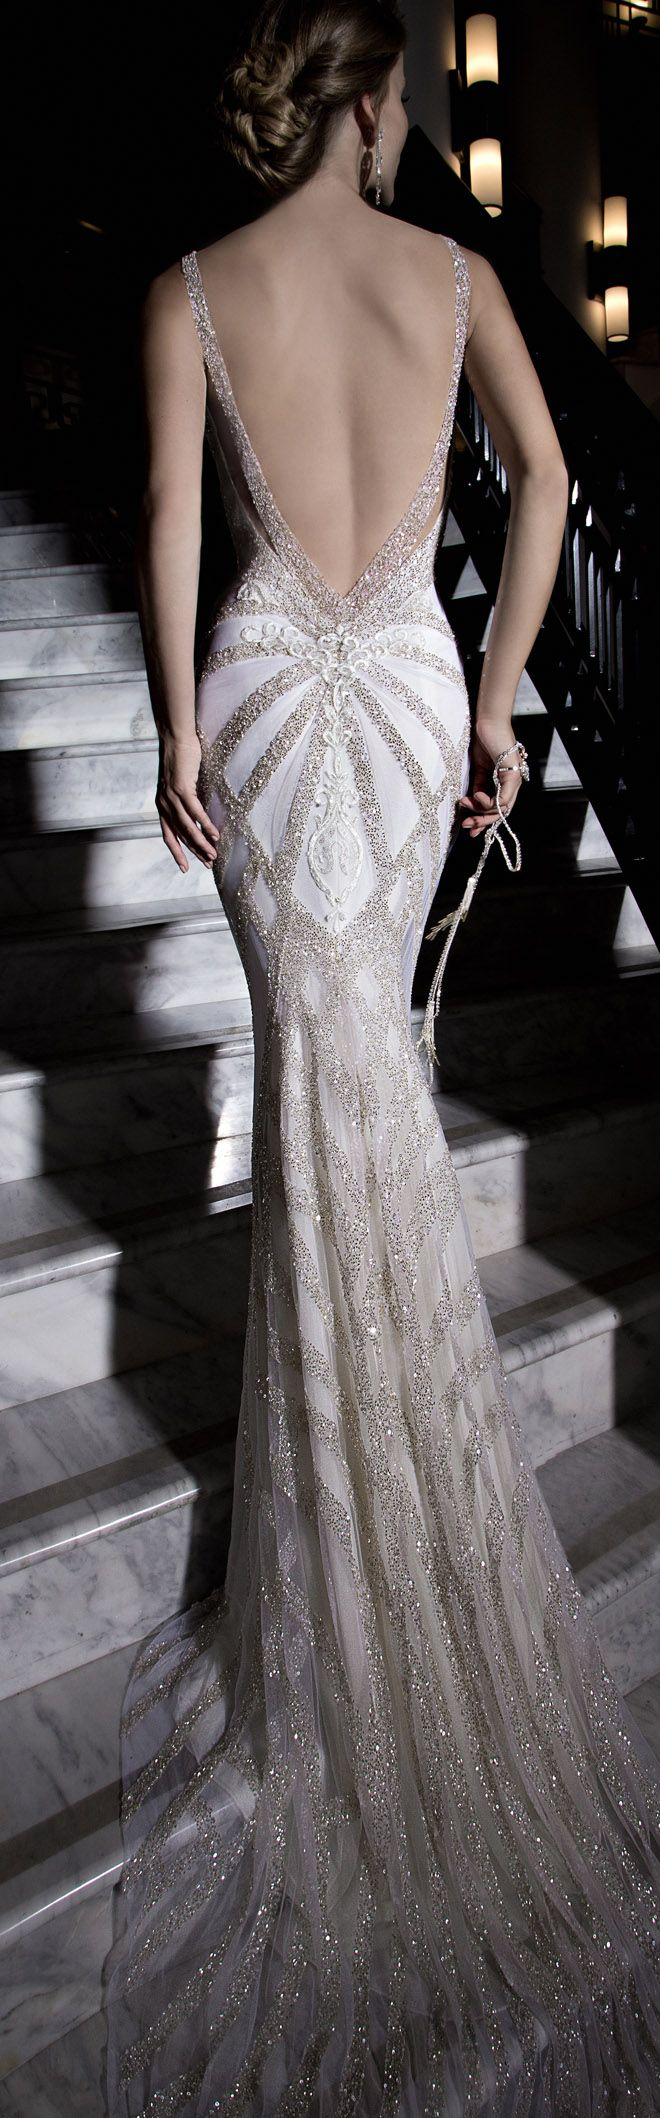 Galia lahav Tales of the Jazz Age bridal collection -Katharina Back